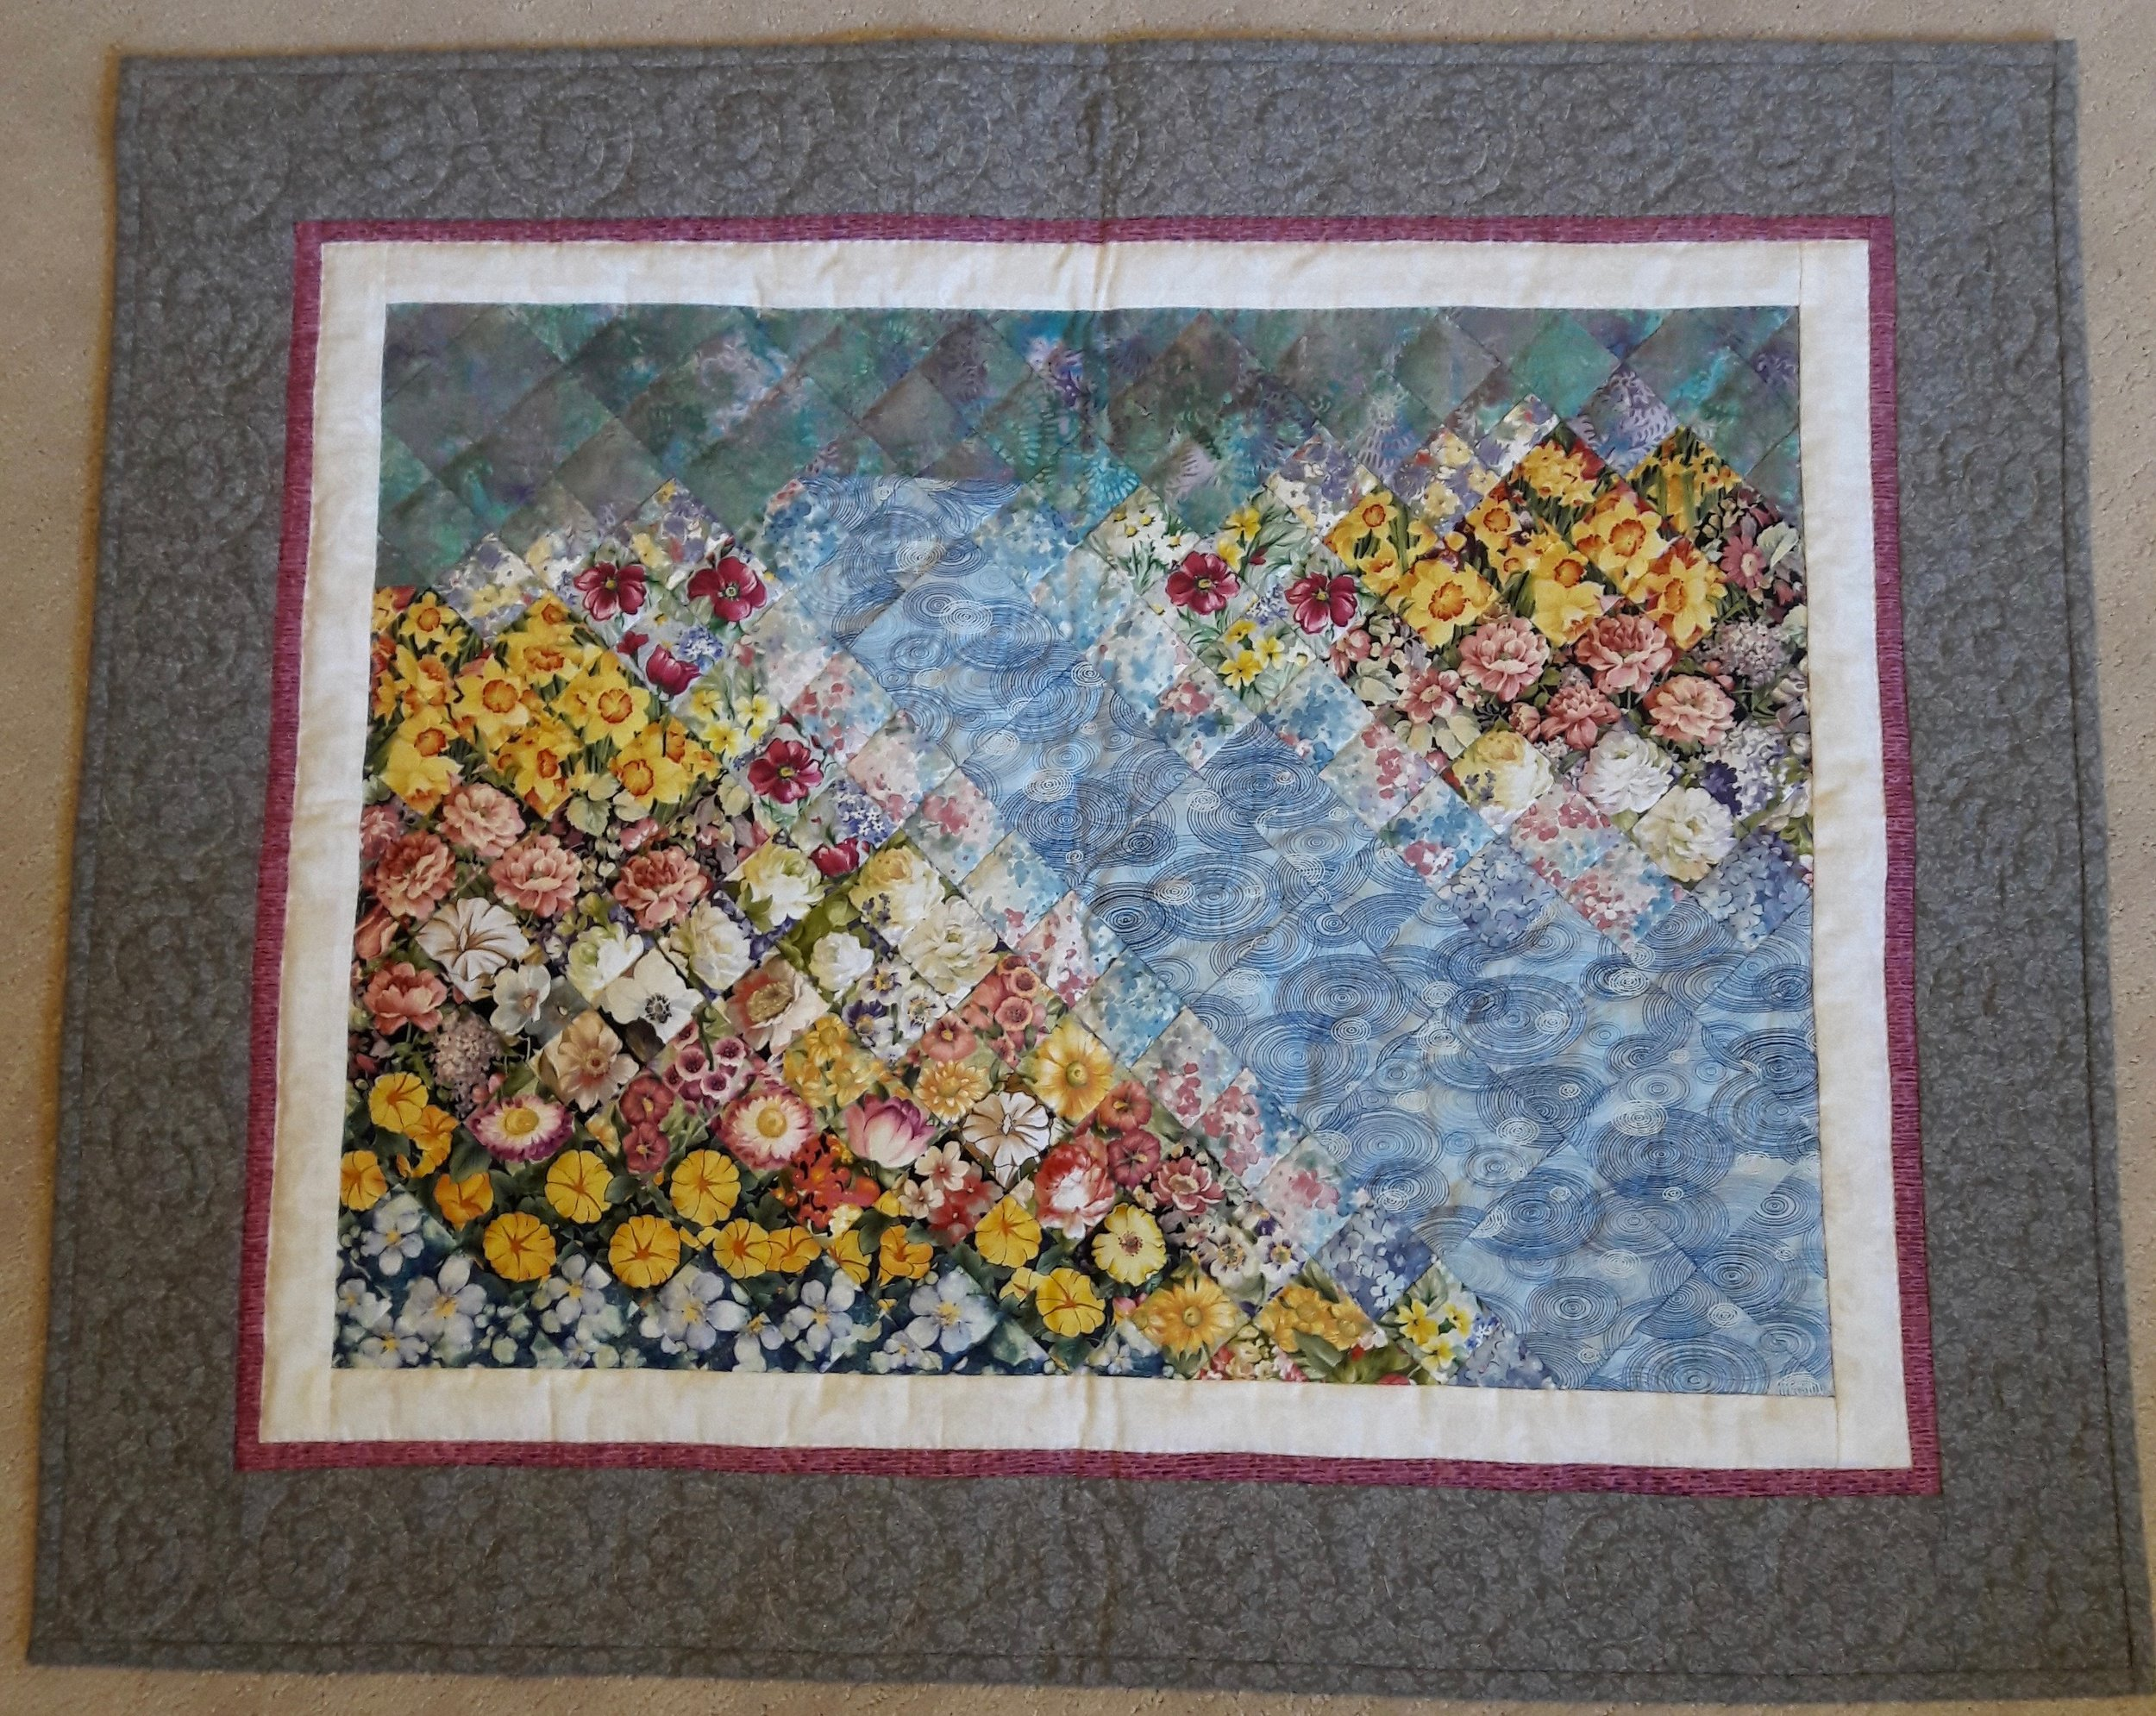 """April Showers, May Flowers, Designed & Pieced by Cindy Helmuth, Hand Quilted by Eunice Chupp, donated by Cindy Helmuth, 27 x 34"""""""